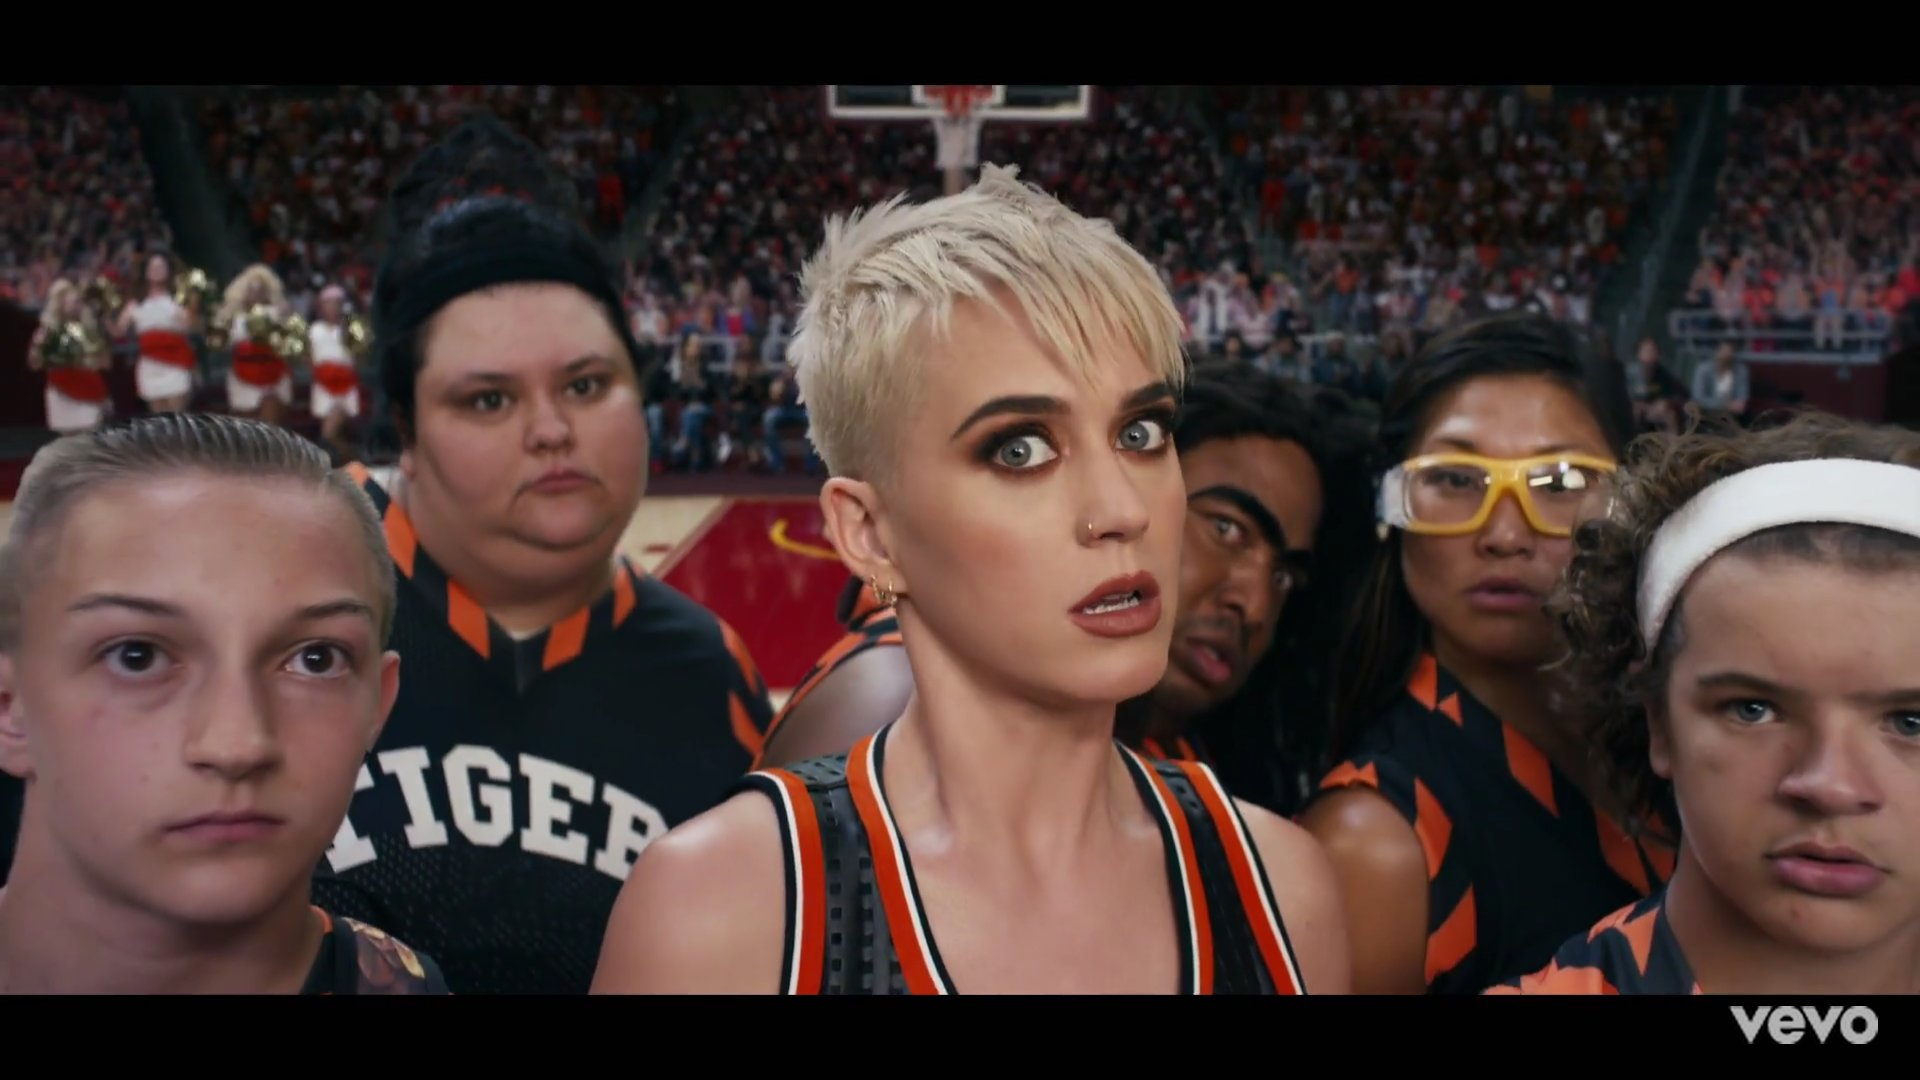 Katy Perry Rilis Video Swish Swish Dengan Meme